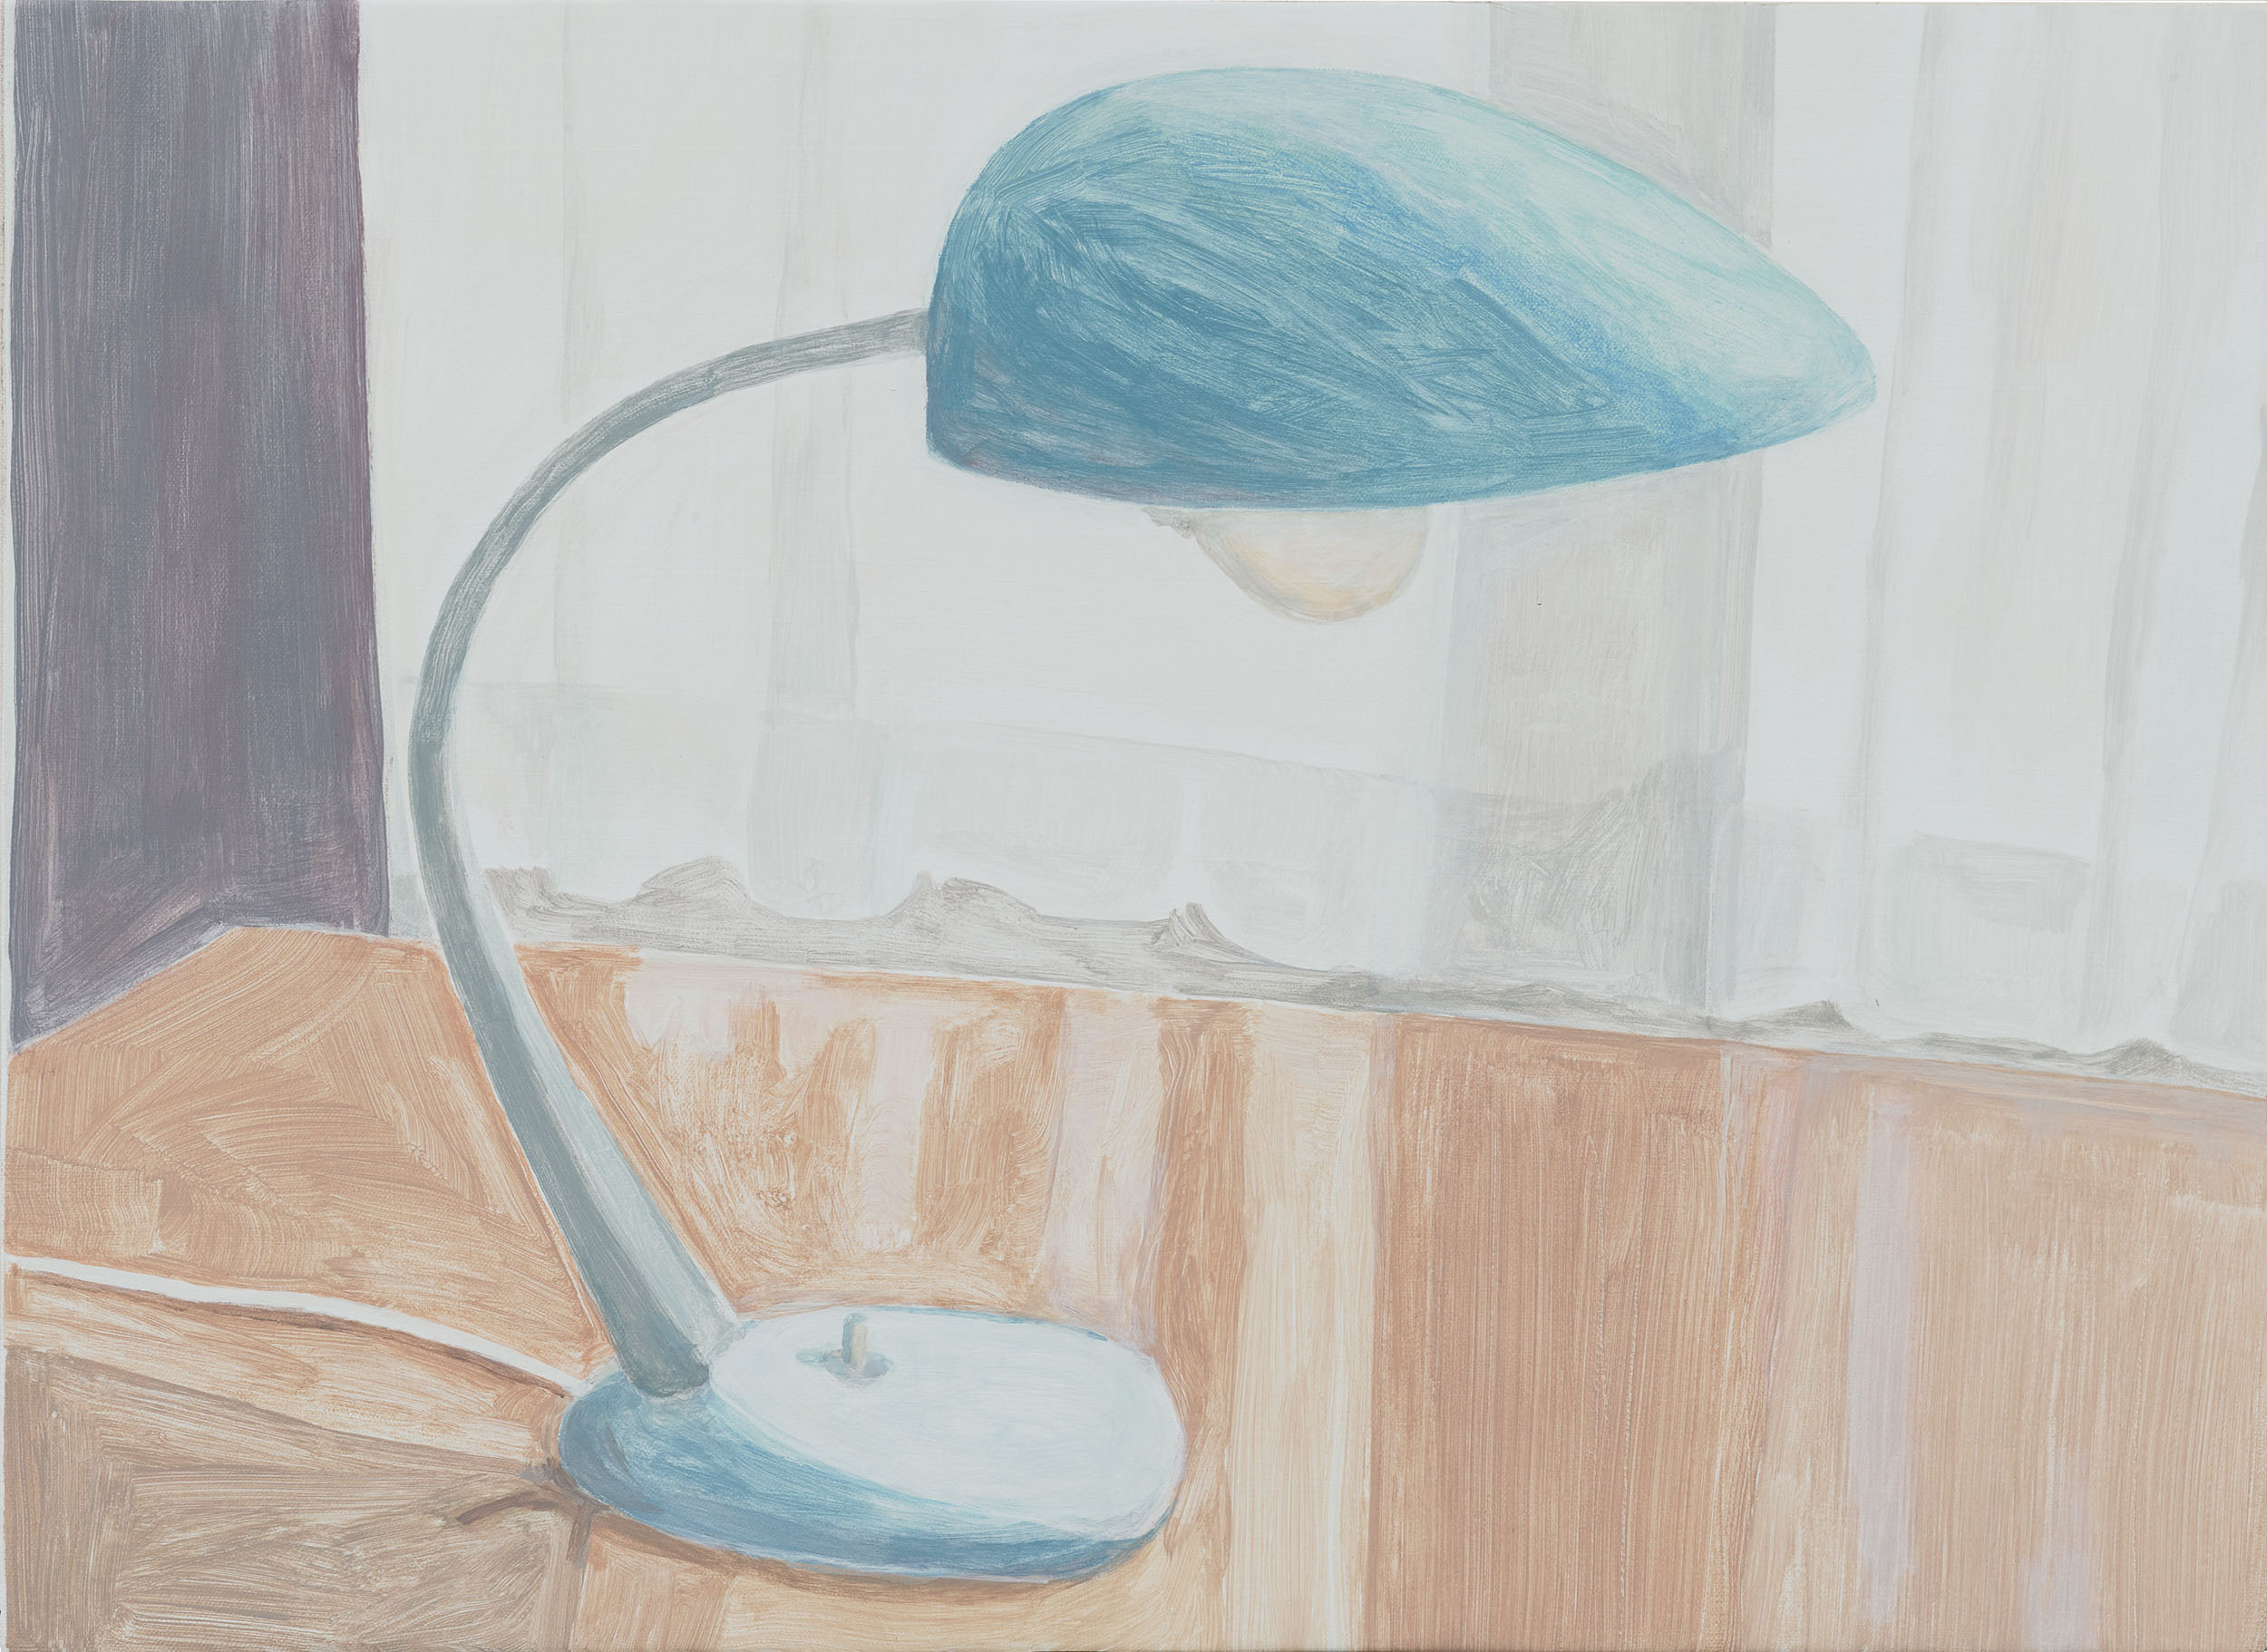 Desk Lamp, acrylic on canvas over board, 16 x 22-1/4 inches, 2017.